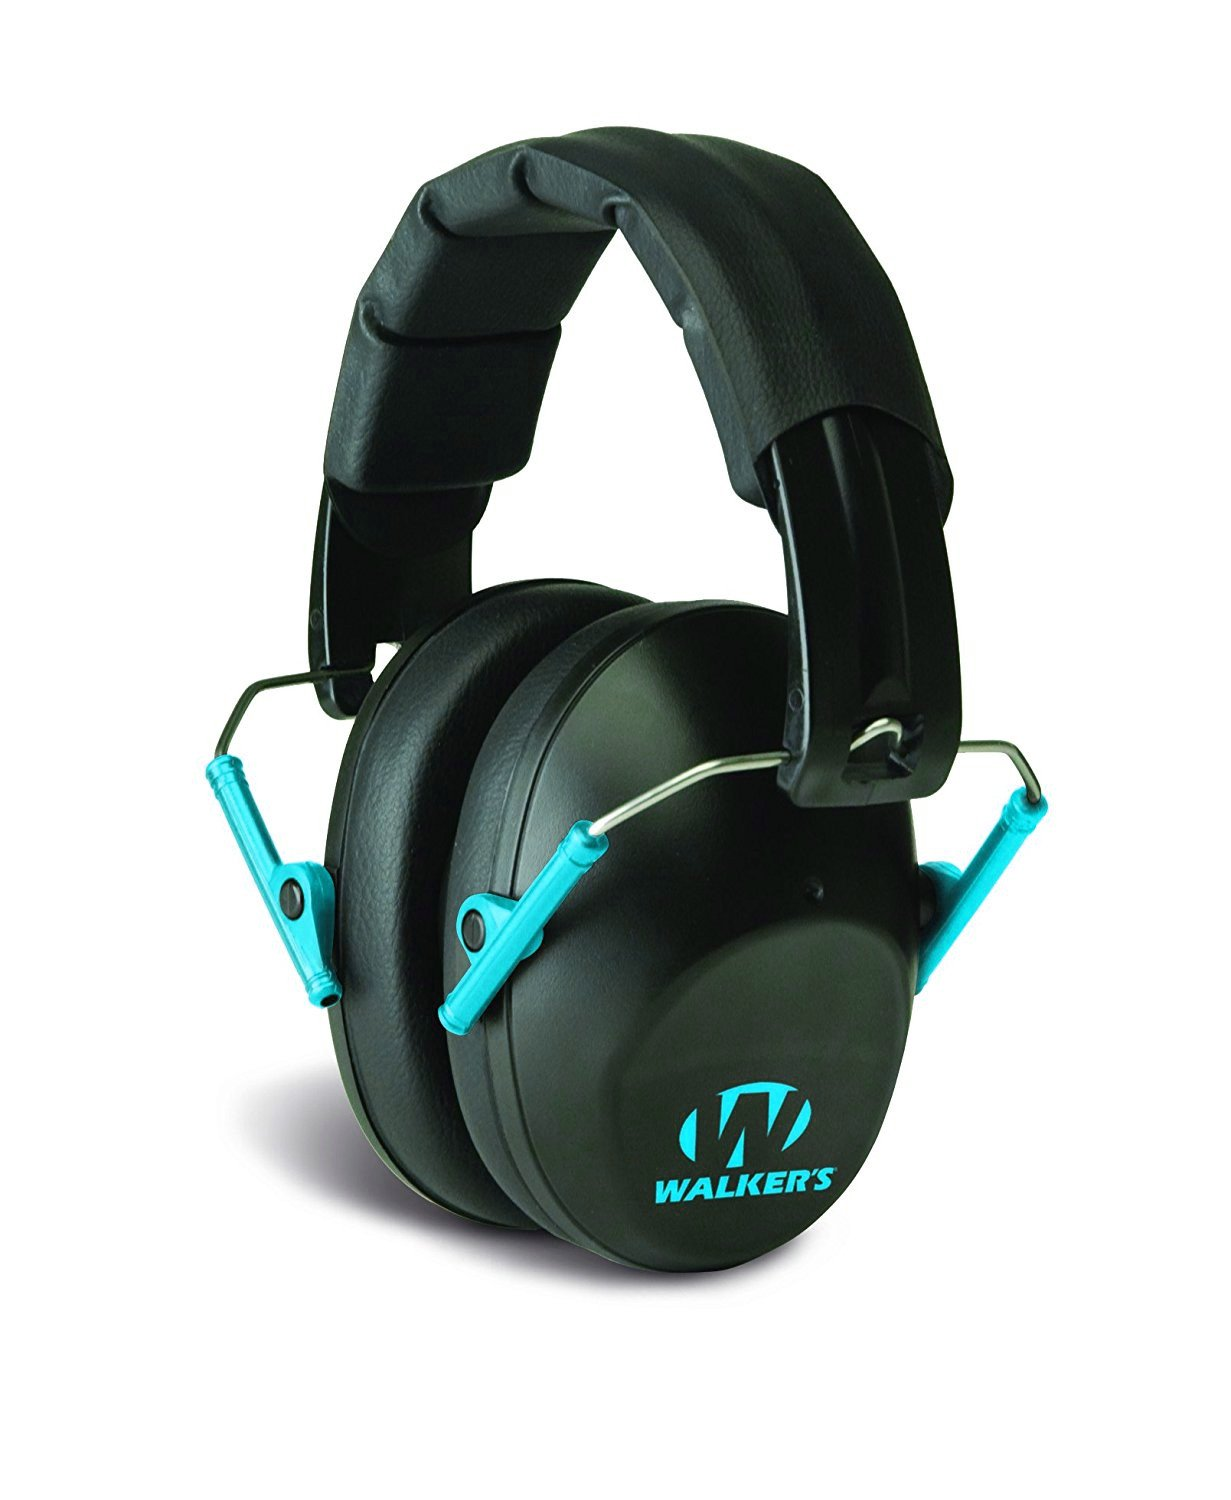 Walker's Passive Low Profile Folding Muff- Black/Teal by Walker's Game Ear